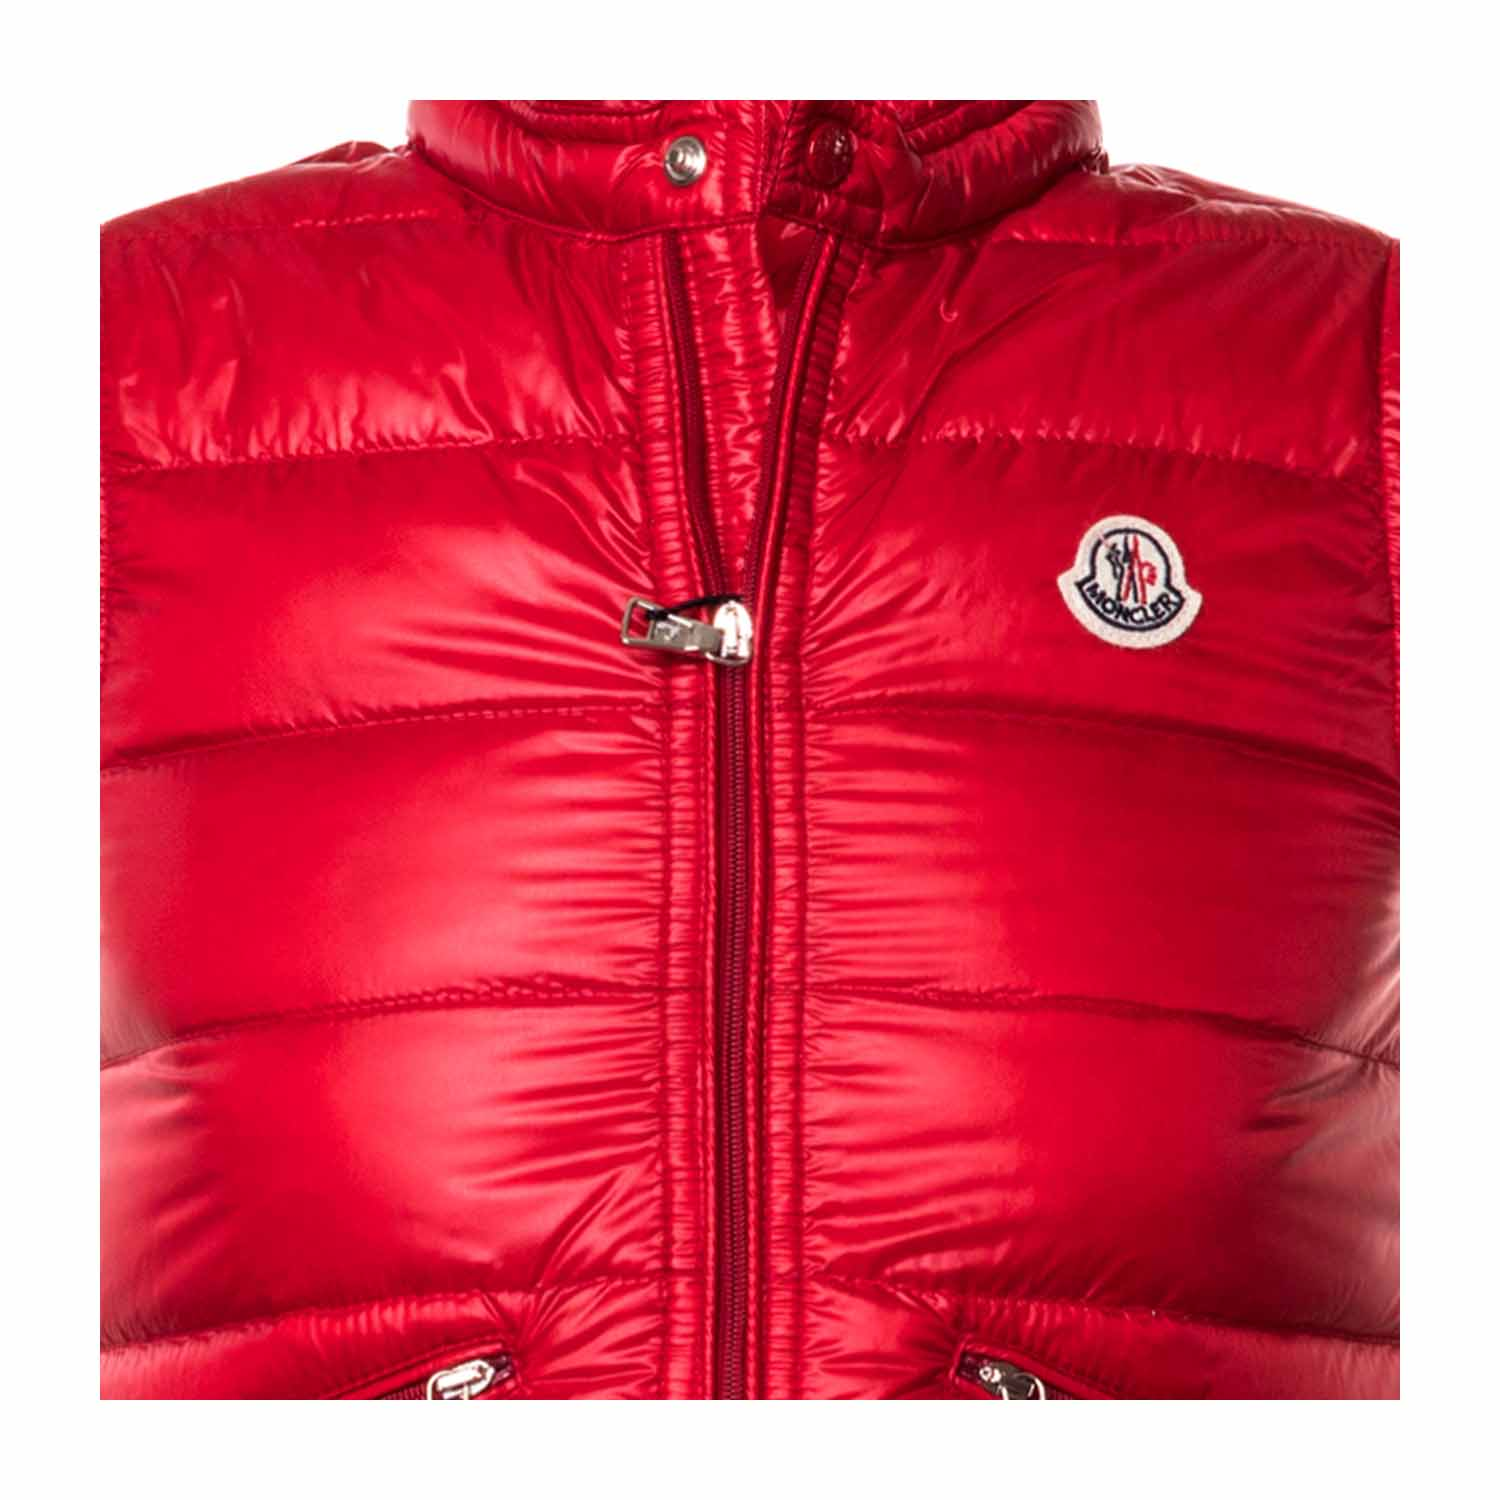 1907b9f8d Moncler - Red Logo Body Warmer For Boys - annameglio.com shop online